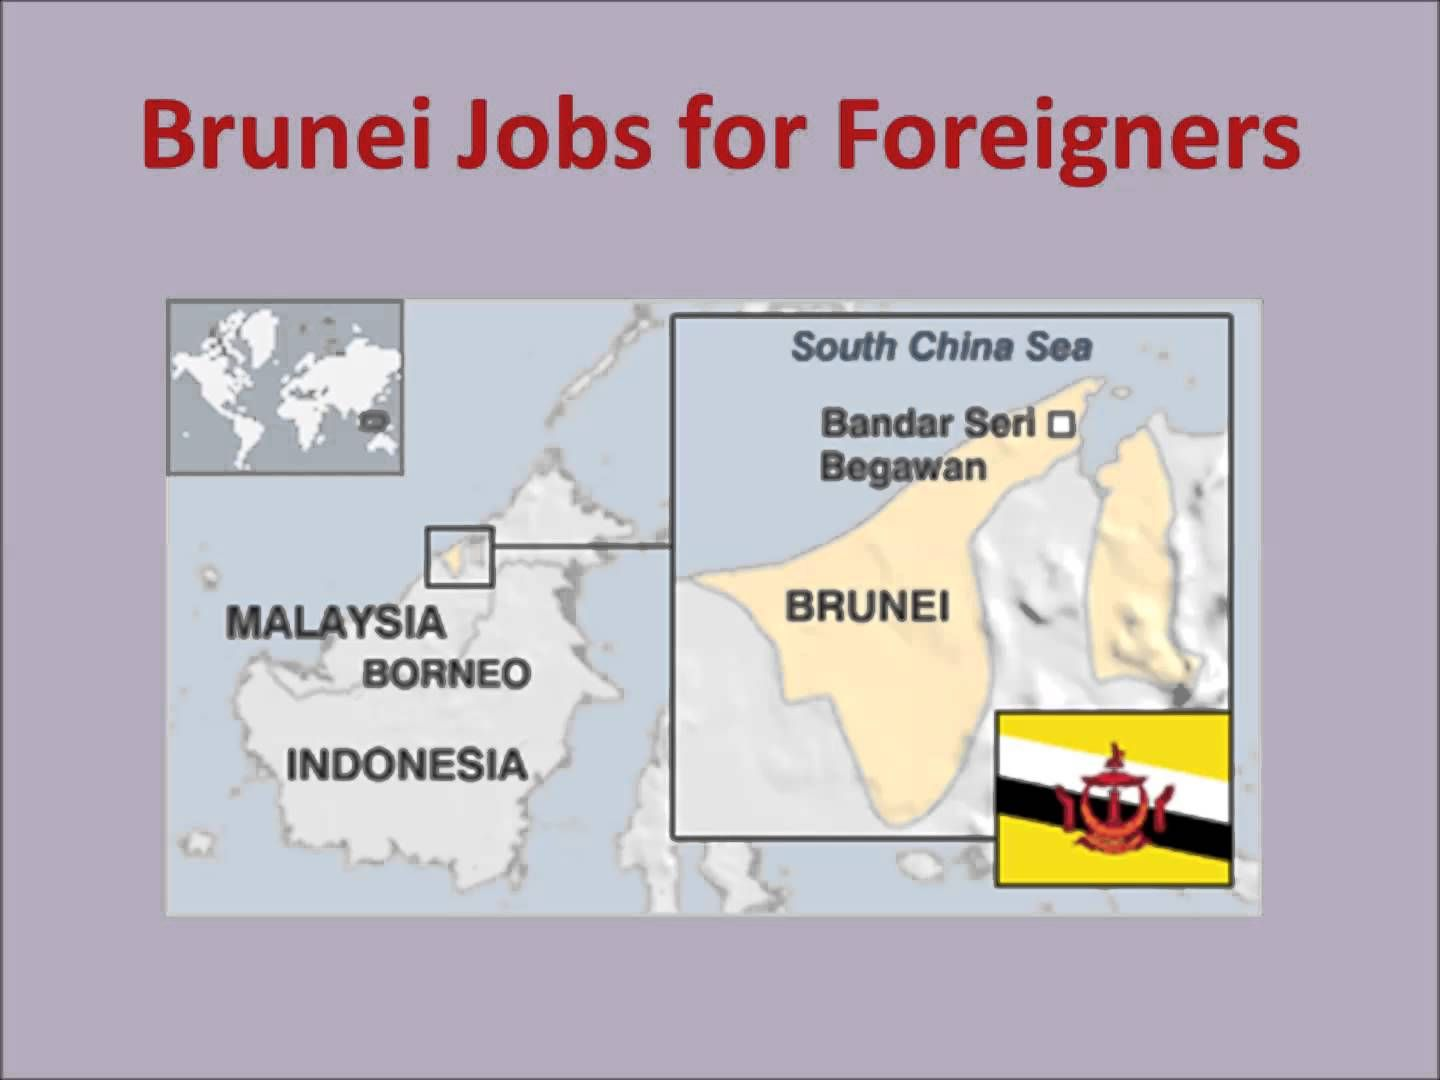 Brunei Jobs and Employment for Foreigners at http://entrepreneur